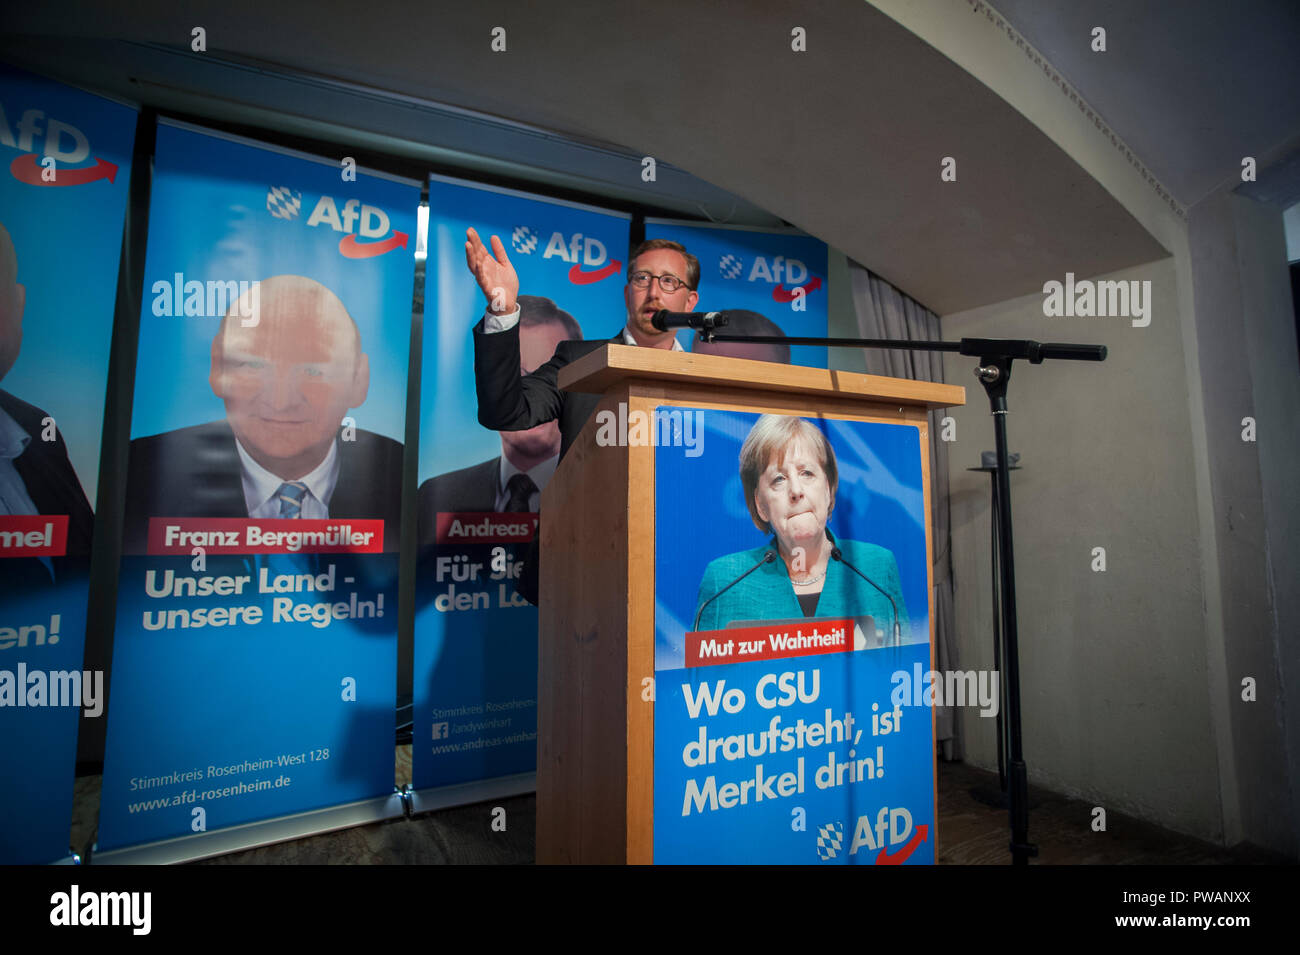 Andreas Winhart of the AfD speaking at an AfD politcal rally in a Bierkeller in Rosenheim, Bavaria, Germany. - Stock Image